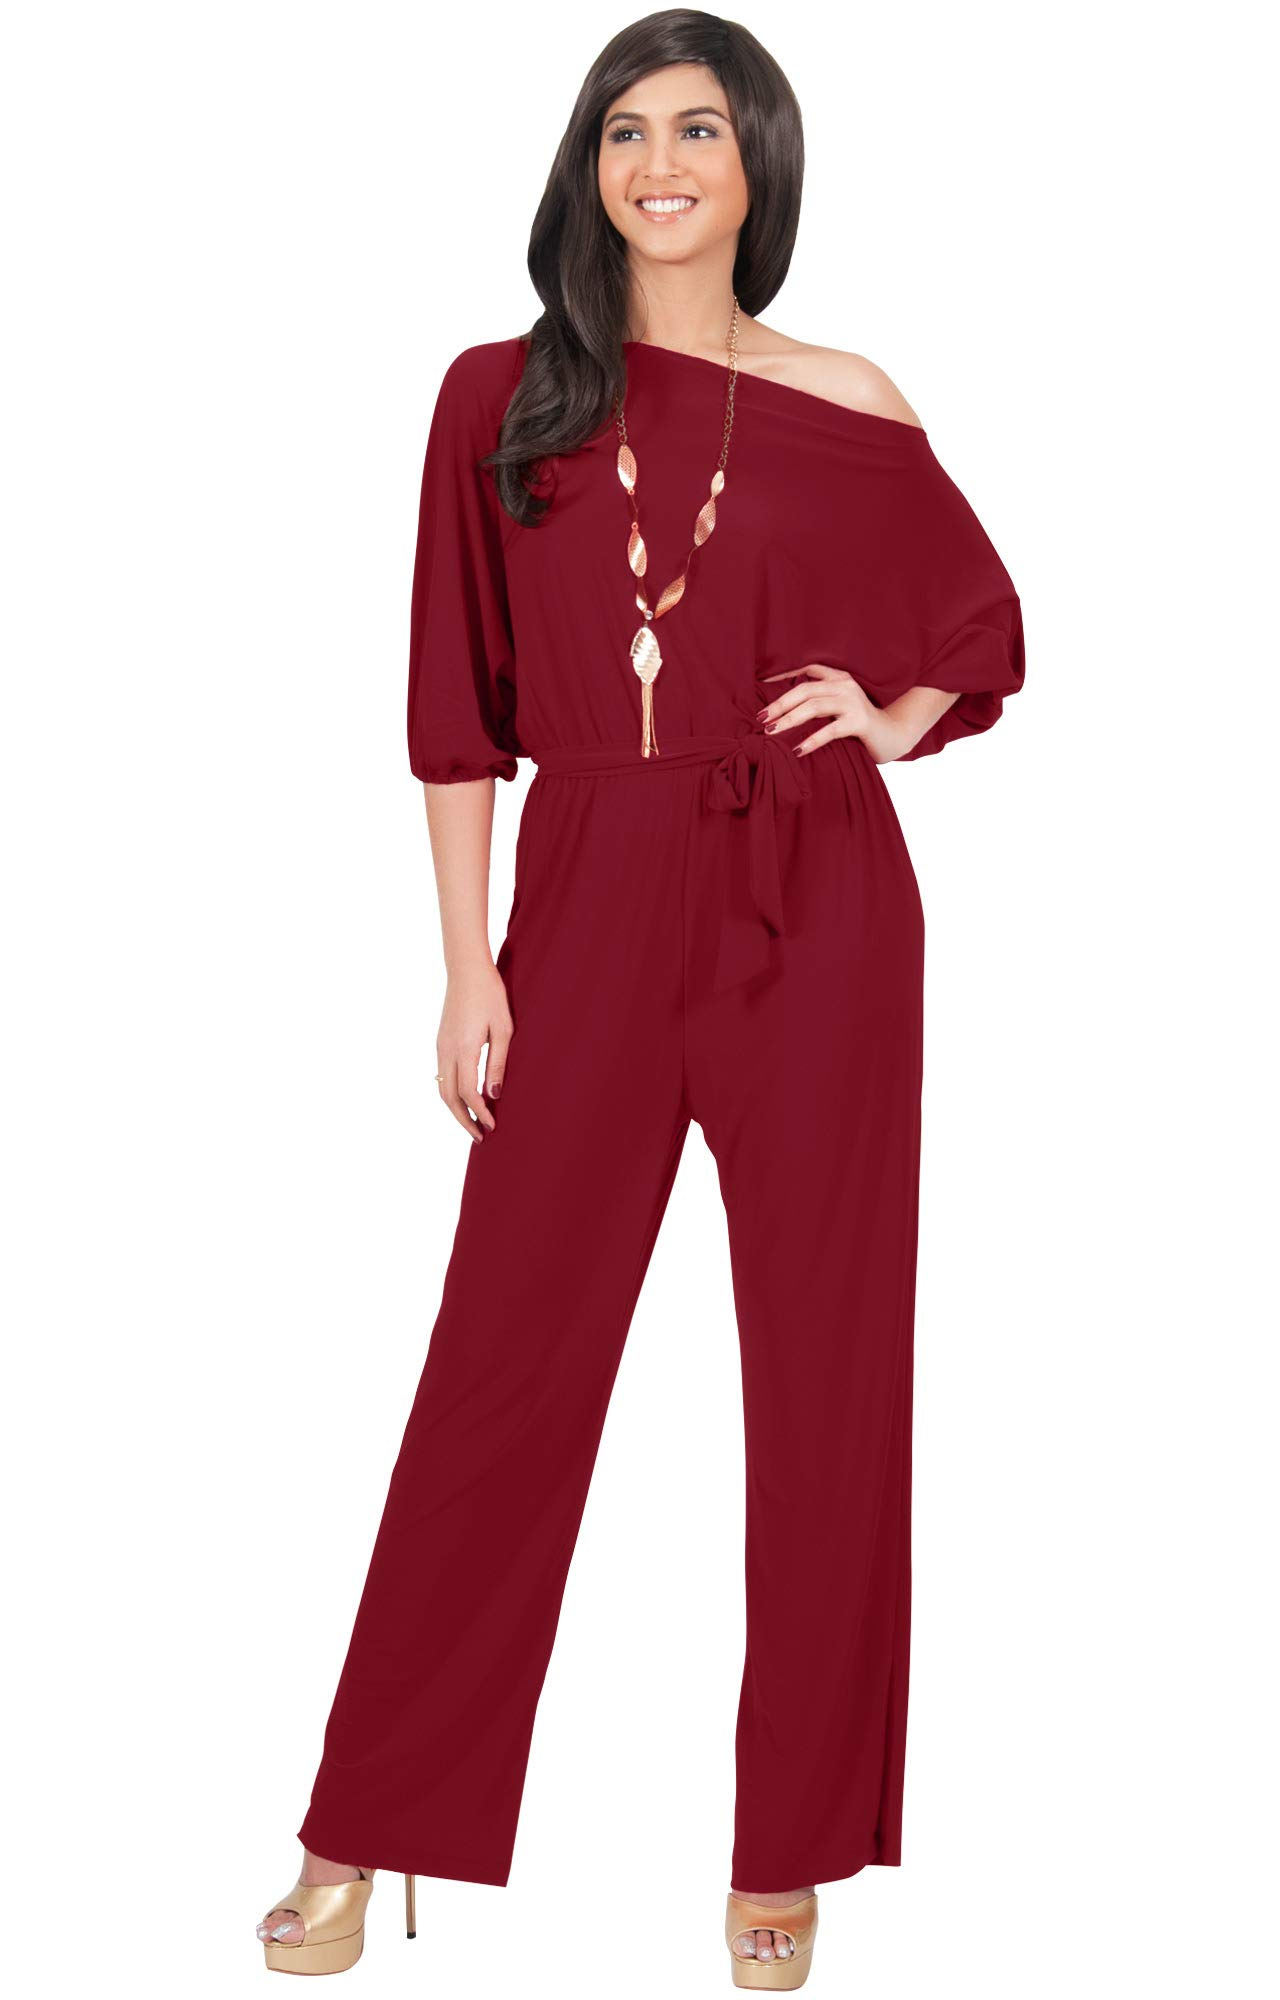 KOH KOH Plus Size Womens One Shoulder Short Sleeve Sexy Wide Leg Long Pants One Piece Jumpsuit Jumpsuits Pant Suit Suits Romper Rompers Playsuit Playsuits, Crimson Red 2XL 18-20